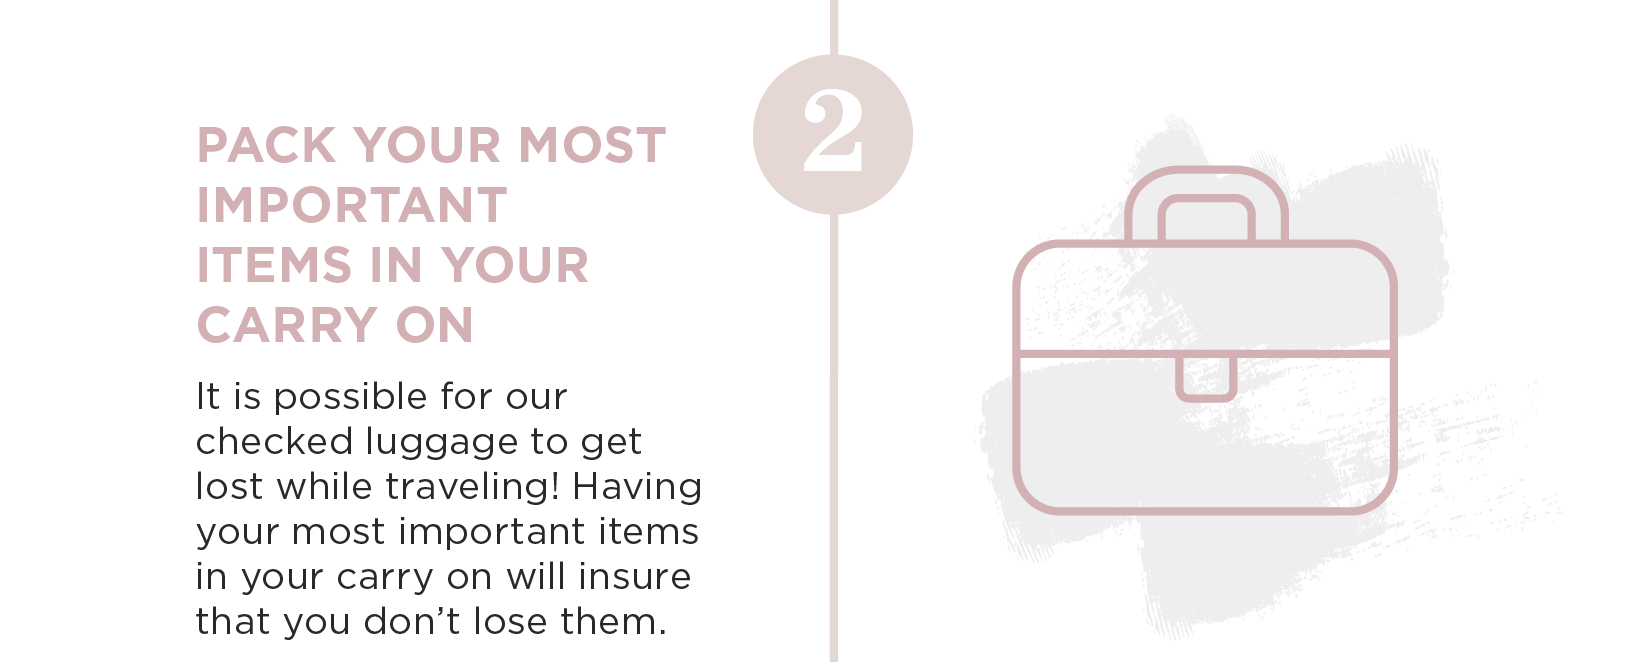 Pack your most important items in your carry on. It is possible for our checked luggage to get lost while traveling! Having your most important items in your carry on will insure that you don't lose them.